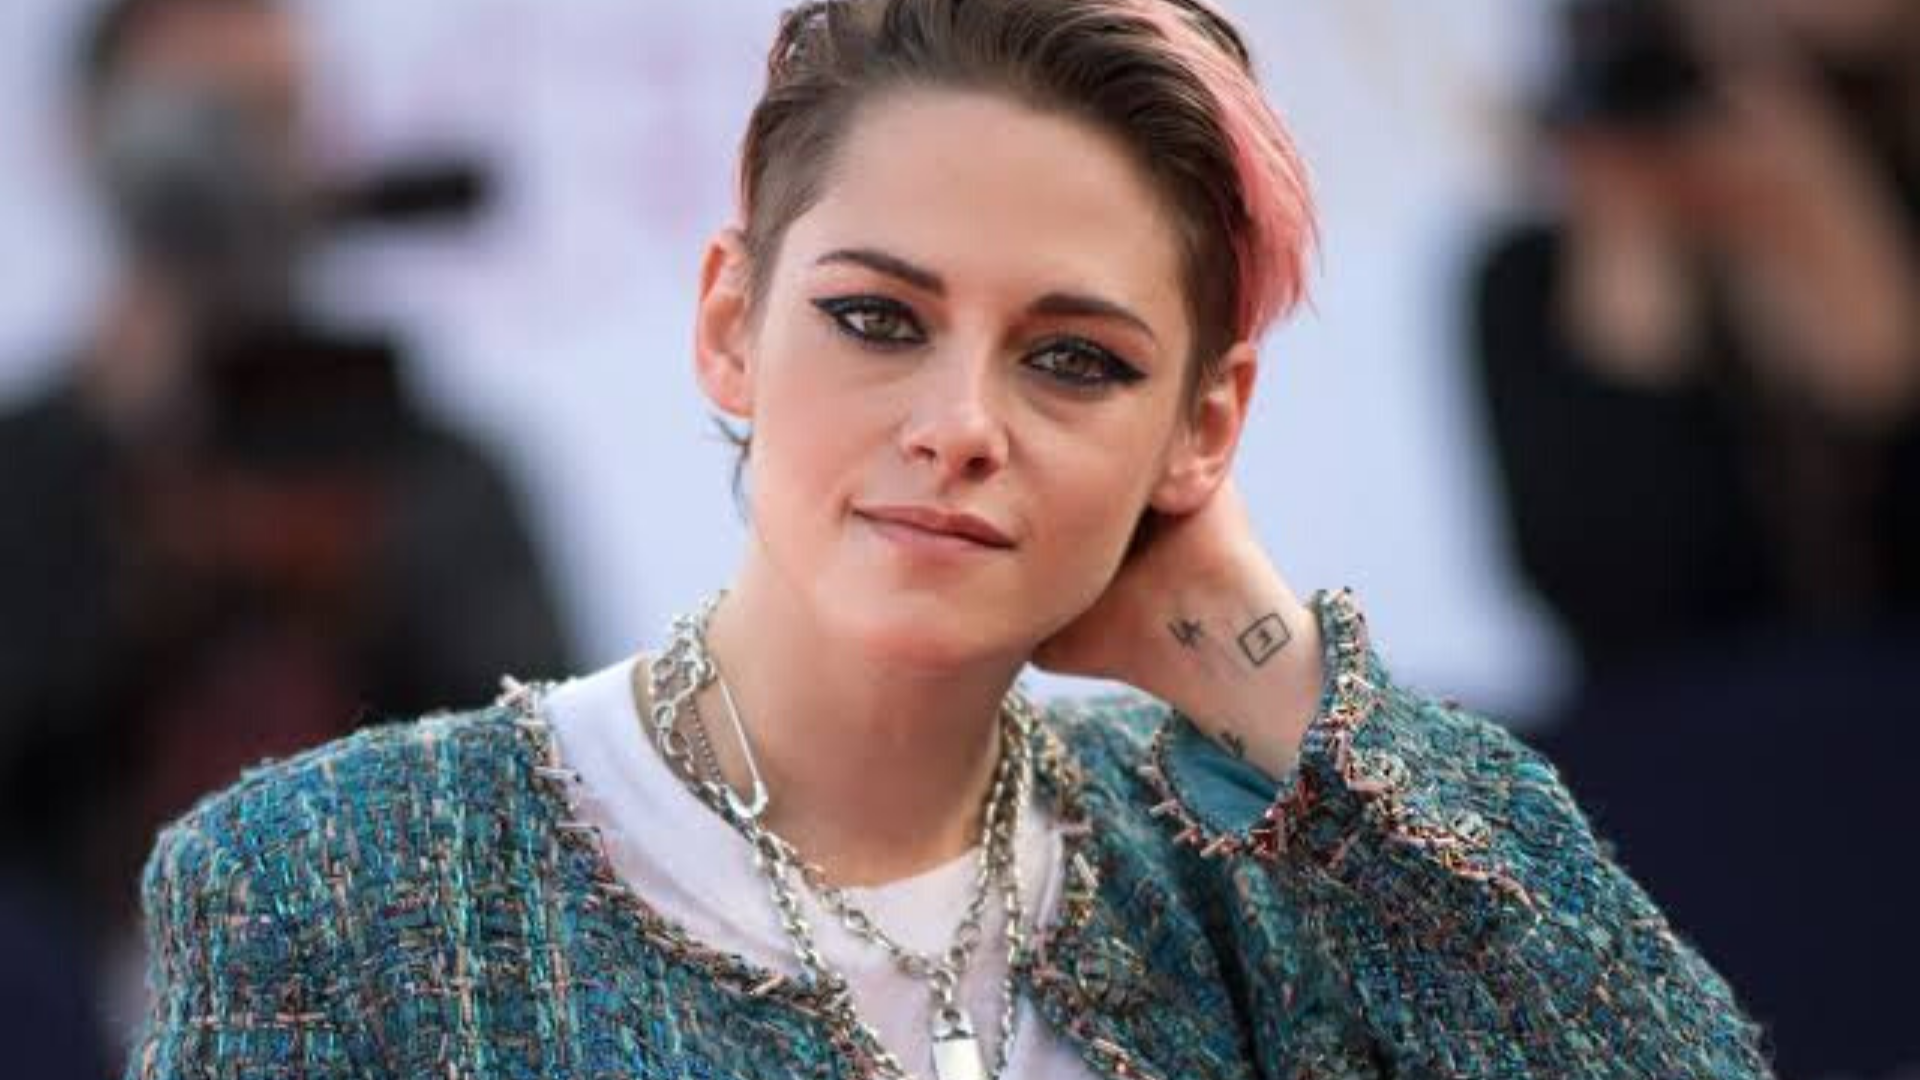 Kristen Stewart's Life Coaching Advice Includes Pottery Classes and More Important topics